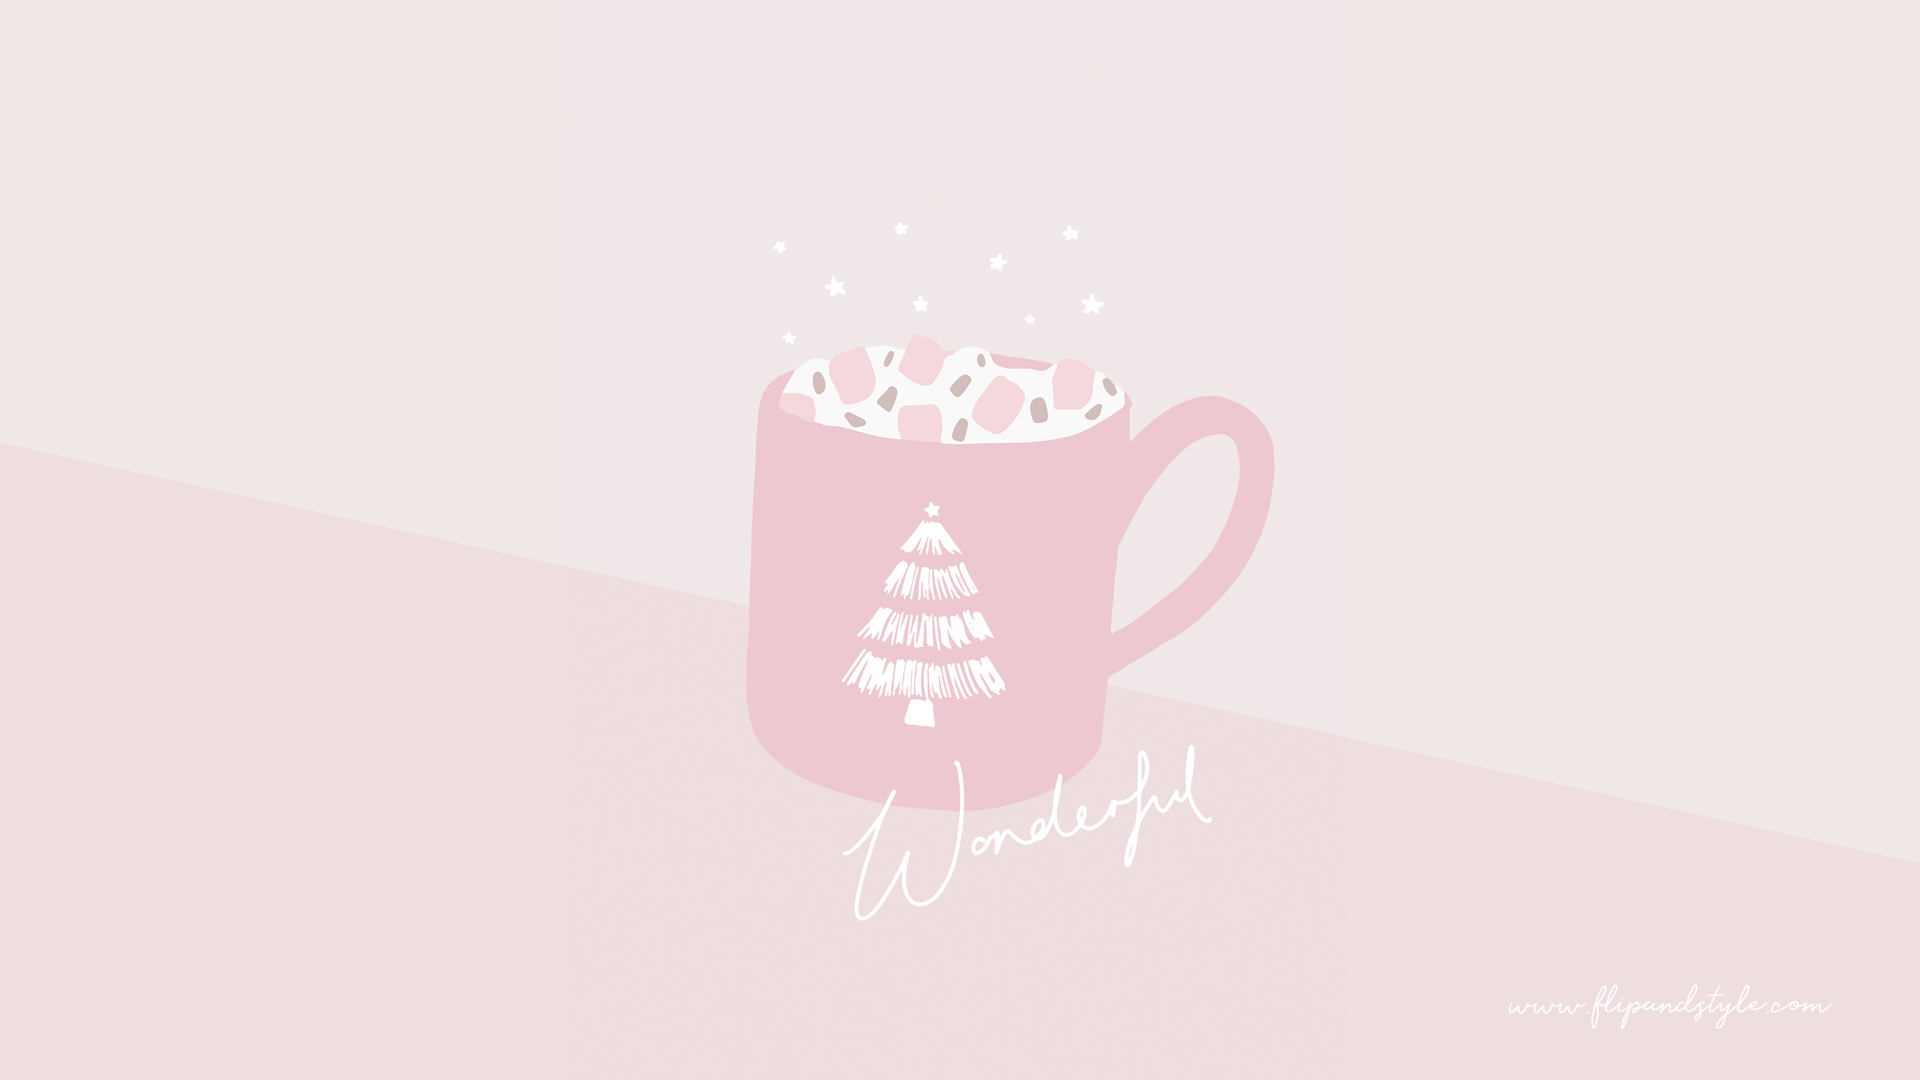 Free Wallpapers Backgrounds Christmas Festive By Flip And Style Christmas Desktop Wallpaper Wallpaper Iphone Christmas Cute Christmas Wallpaper